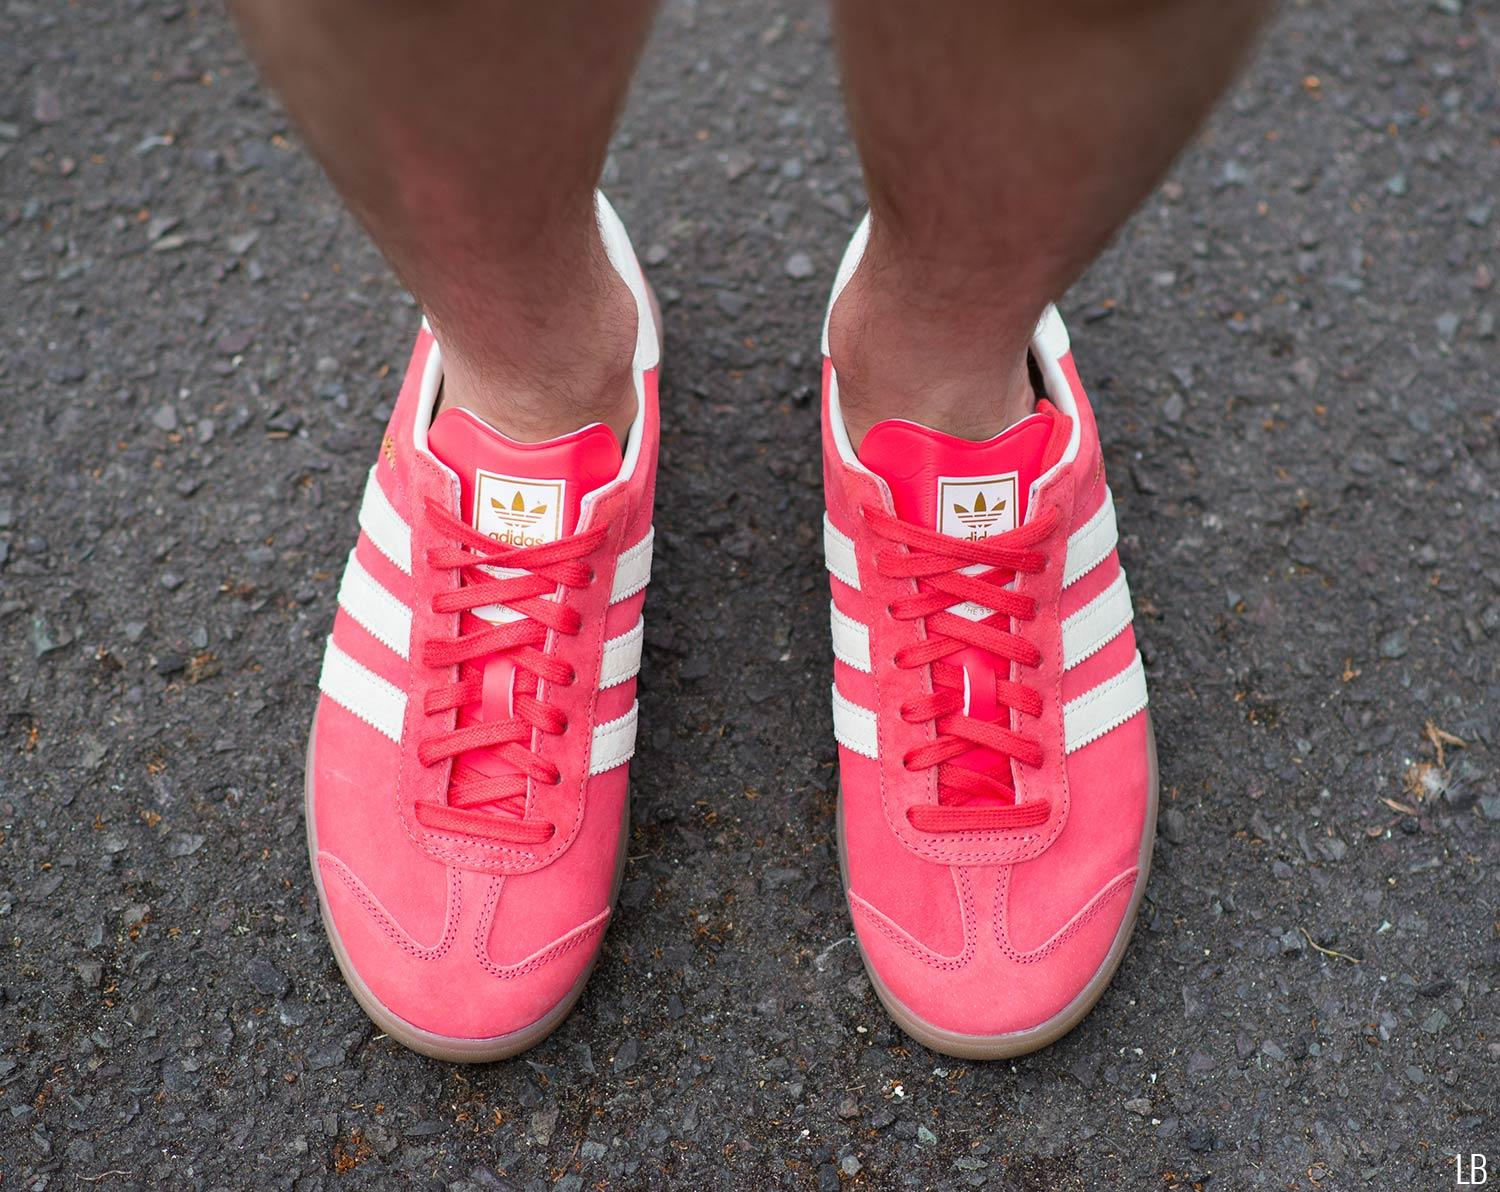 Men's Adidas Hamburg Shock Red Gum Trainers Sneakers Review 6